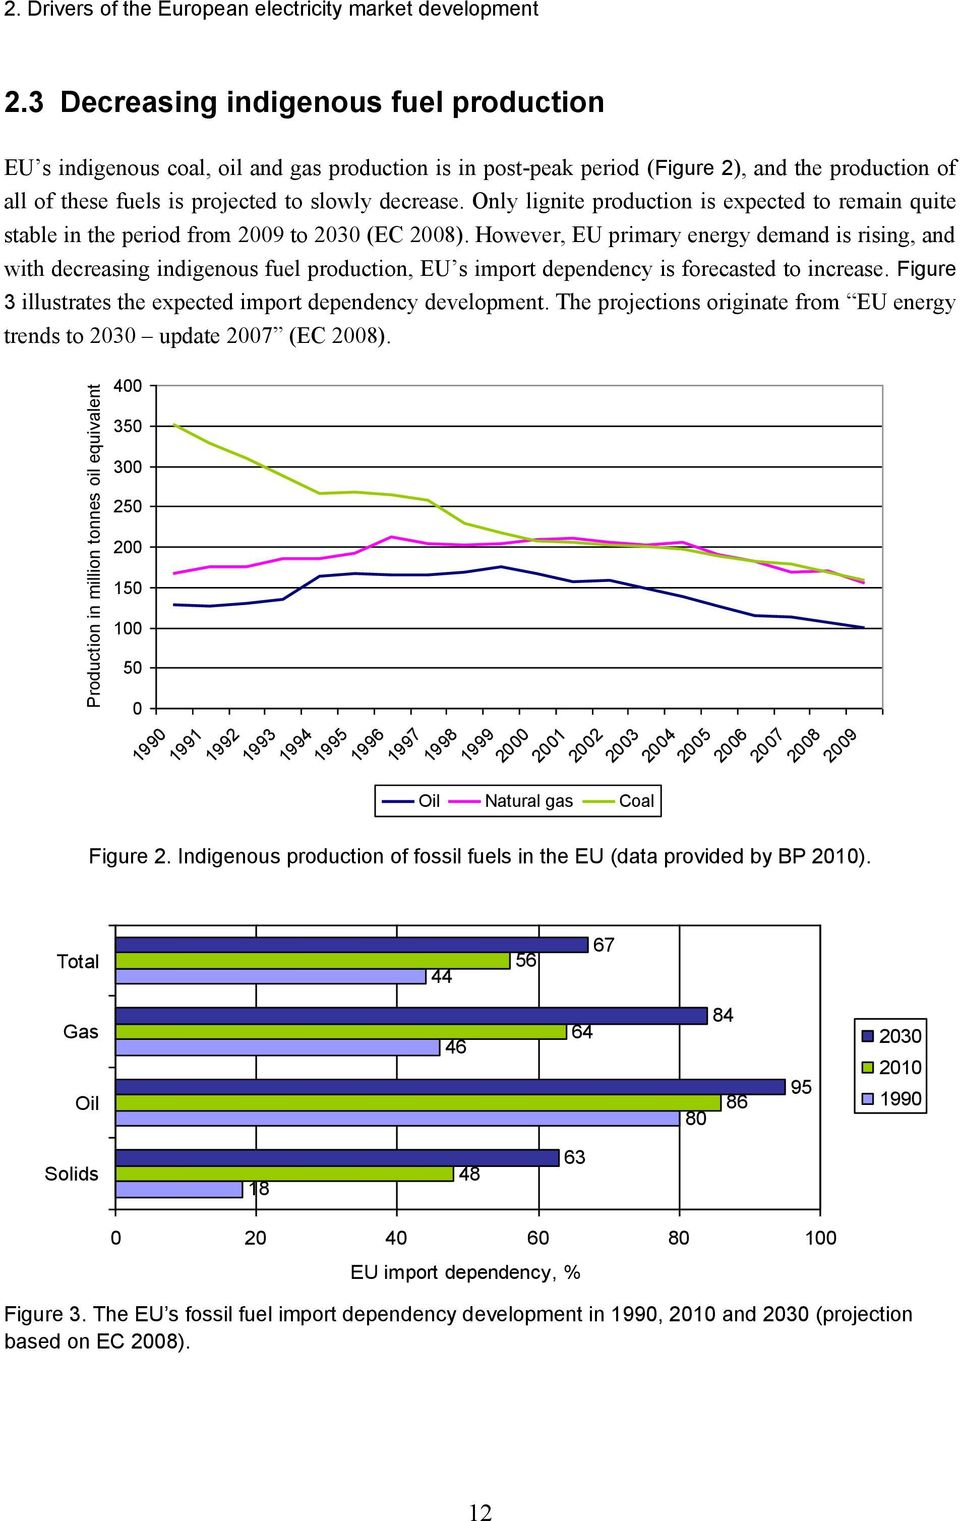 Only lignite production is expected to remain quite stable in the period from 2009 to 2030 (EC 2008).